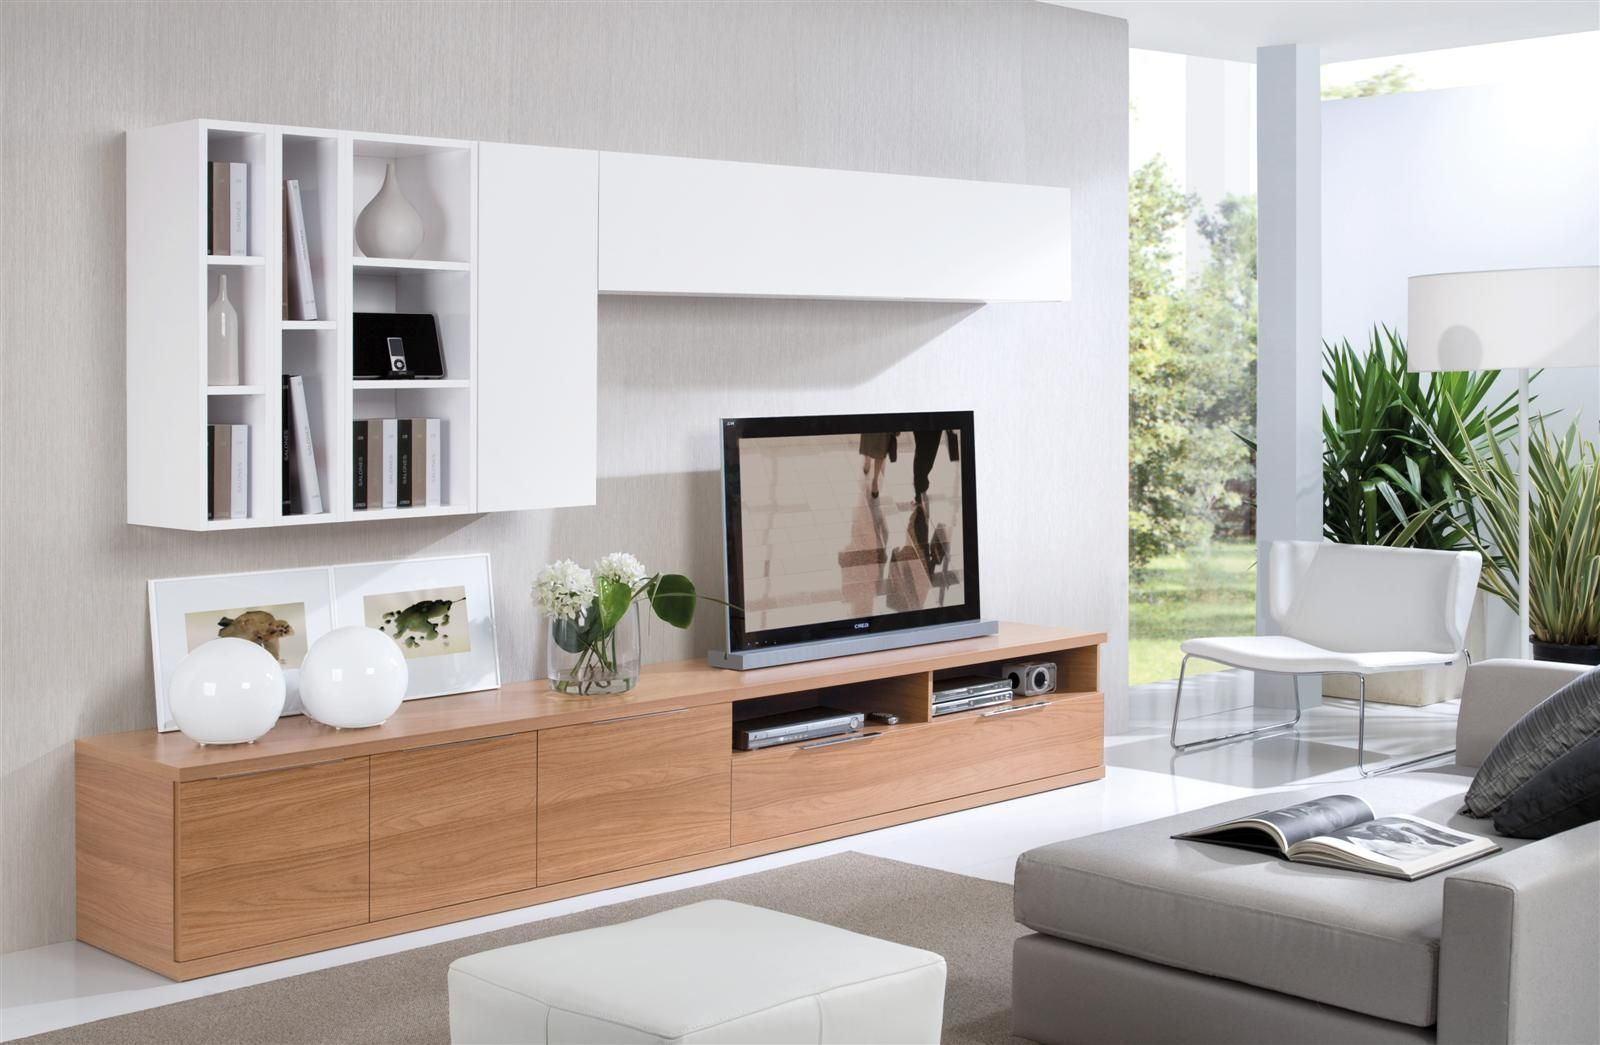 50 Cool TV Stand Designs for Your Home tv stand ideas diy, tv stand ...